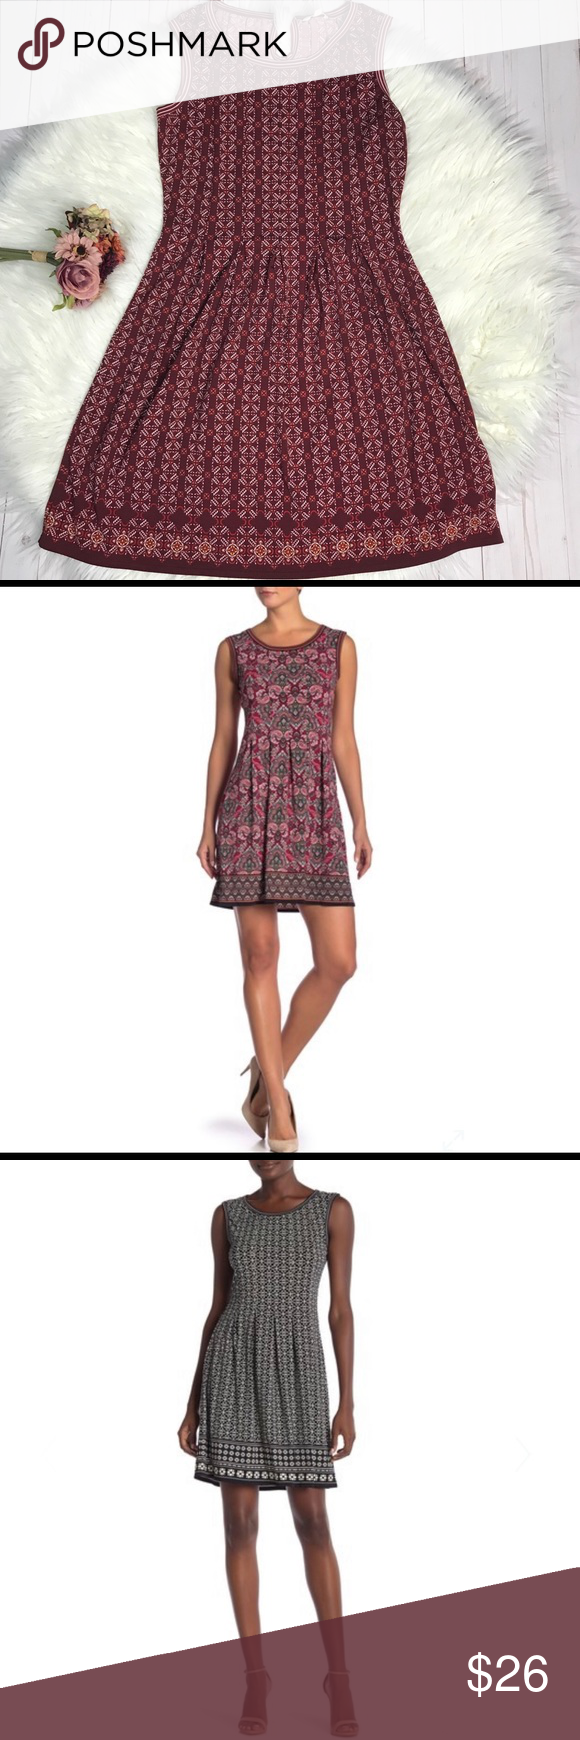 fa5be61bbe Max Studio Pleated Patterned Fit n Flare Dress Burgundy background with  white and cream print. Stock photos are same dress